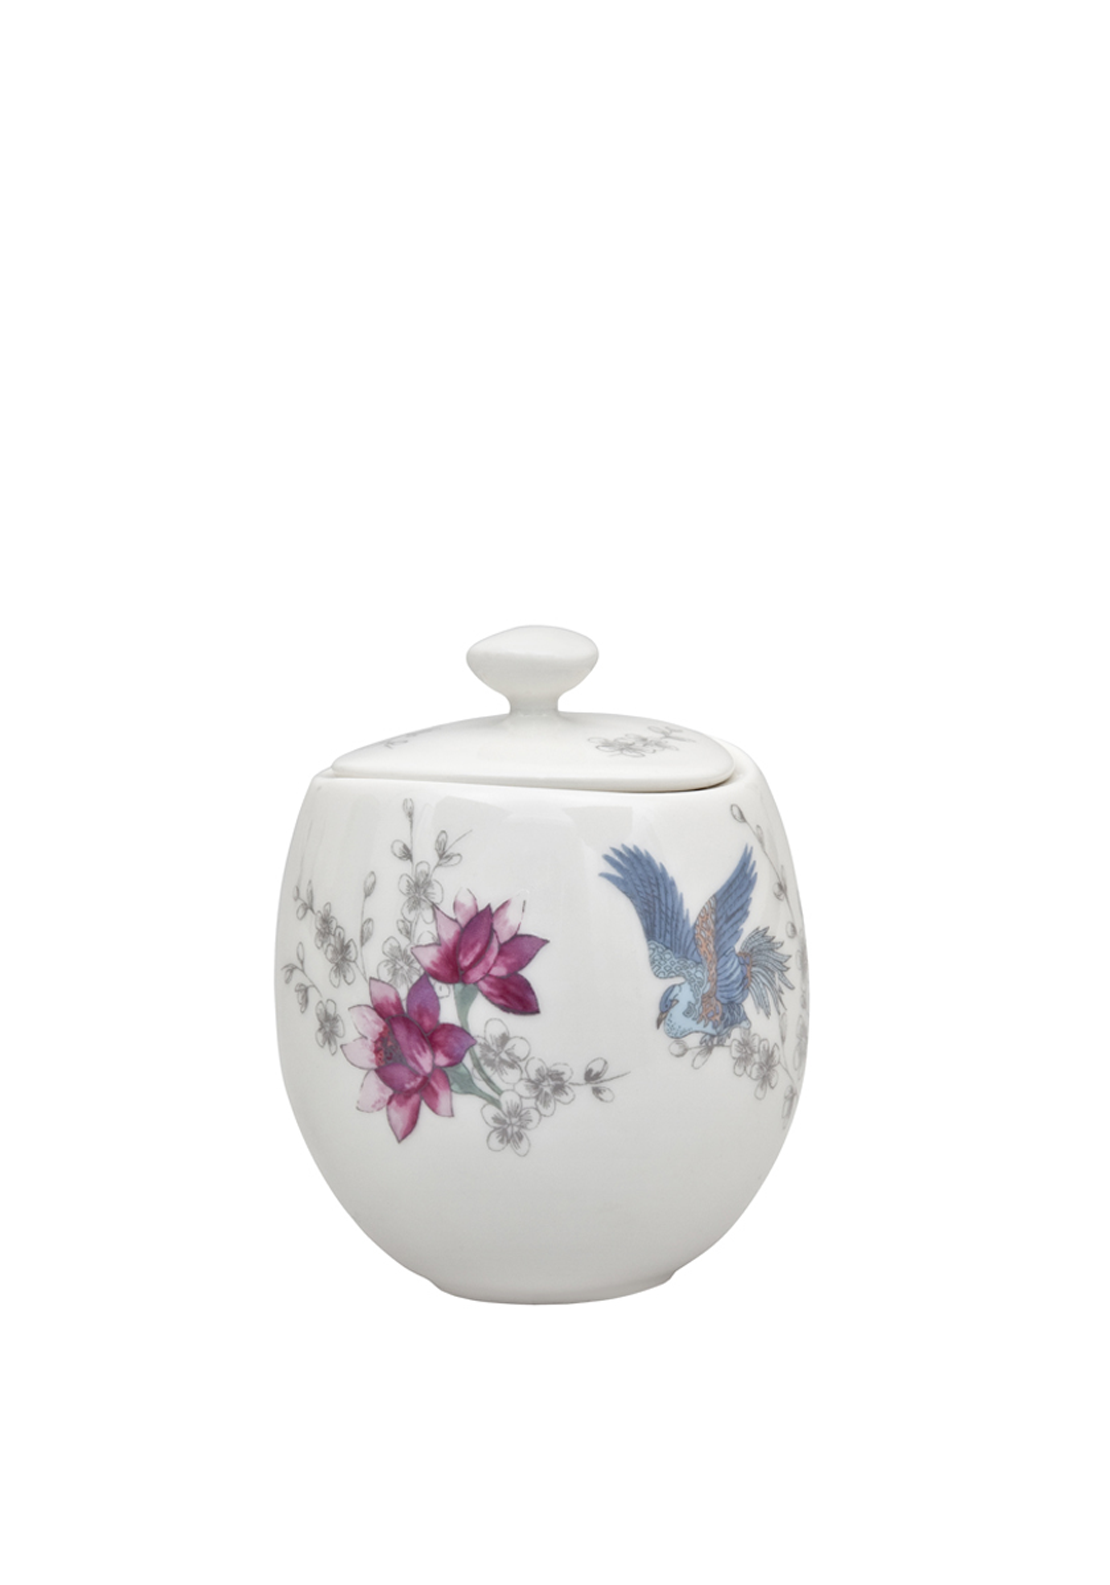 Denby Monsoon Home Kyoto Covered Sugar Pot with Lid, Cream